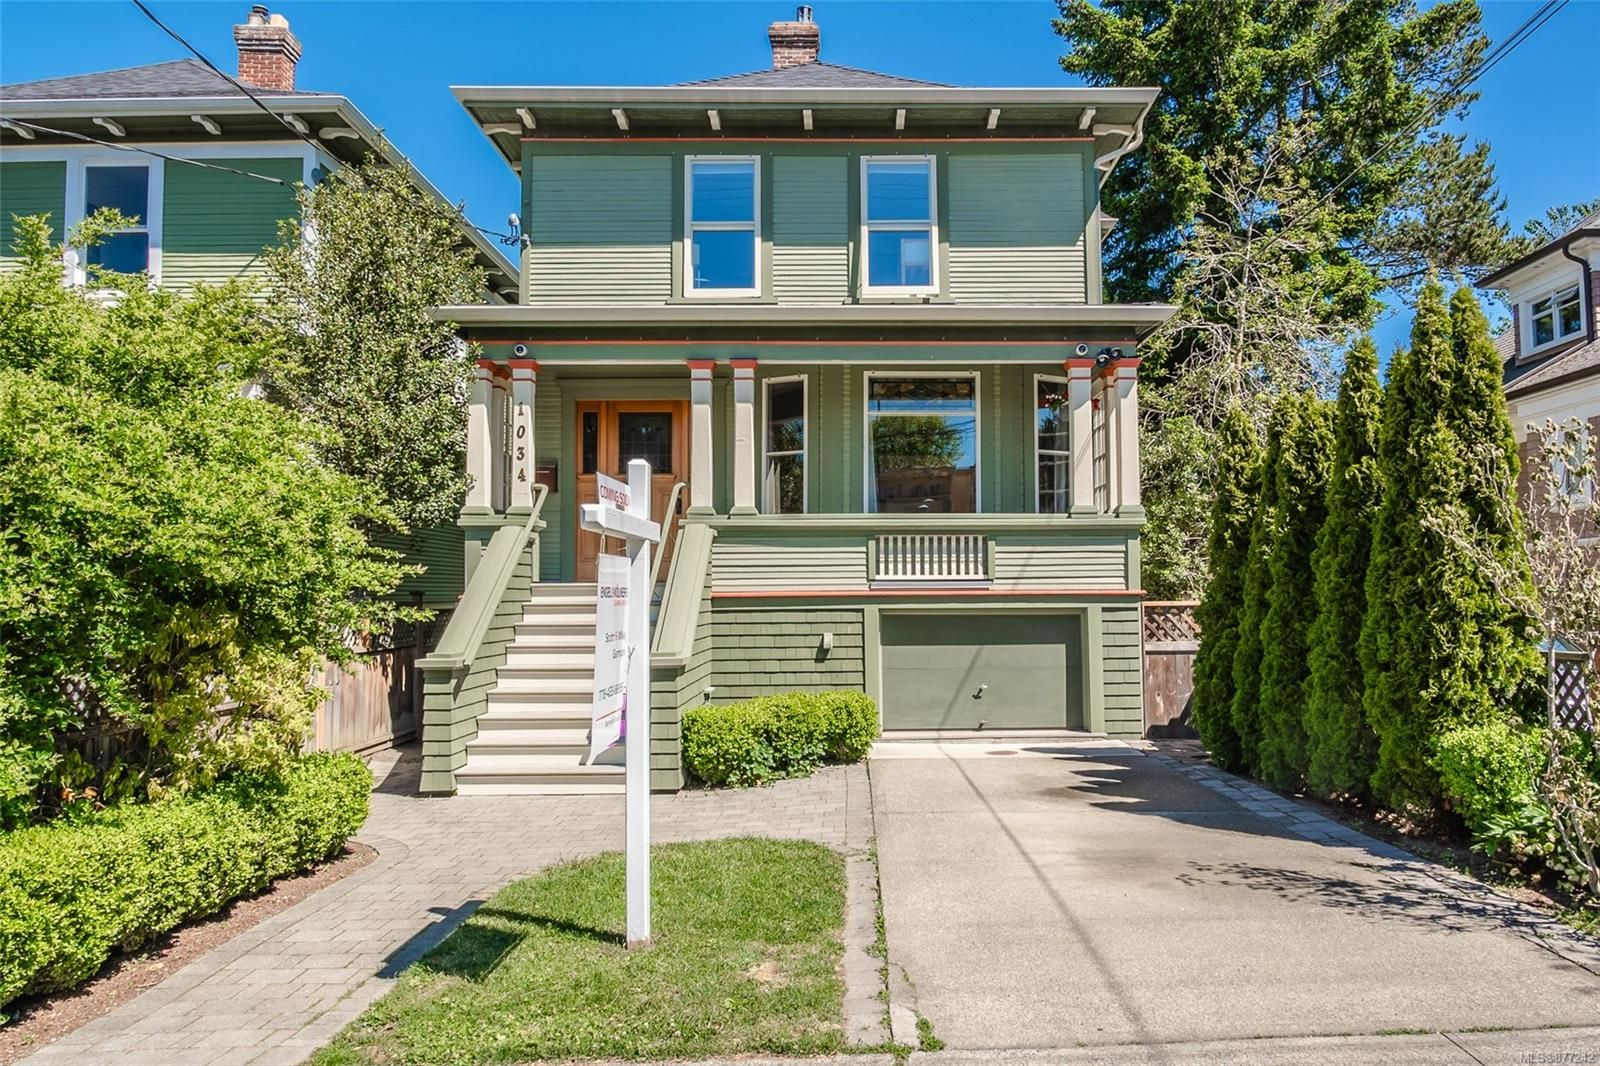 Main Photo: 1034 Princess Ave in : Vi Central Park House for sale (Victoria)  : MLS®# 877242